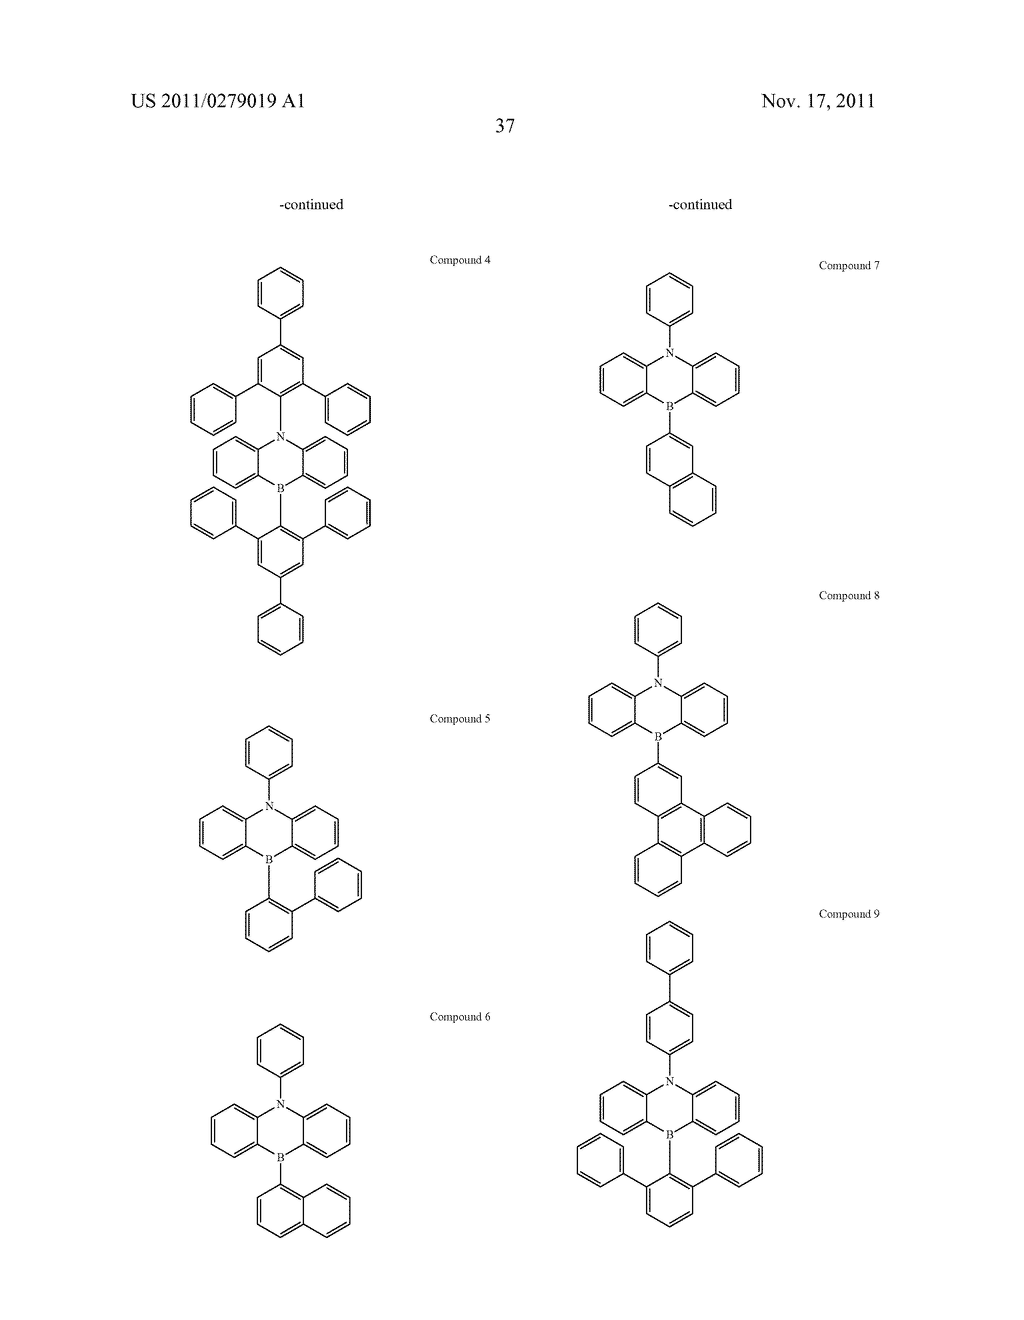 AZABORININE COMPOUNDS AS HOST MATERIALS AND DOPANTS FOR PHOLEDS - diagram, schematic, and image 44